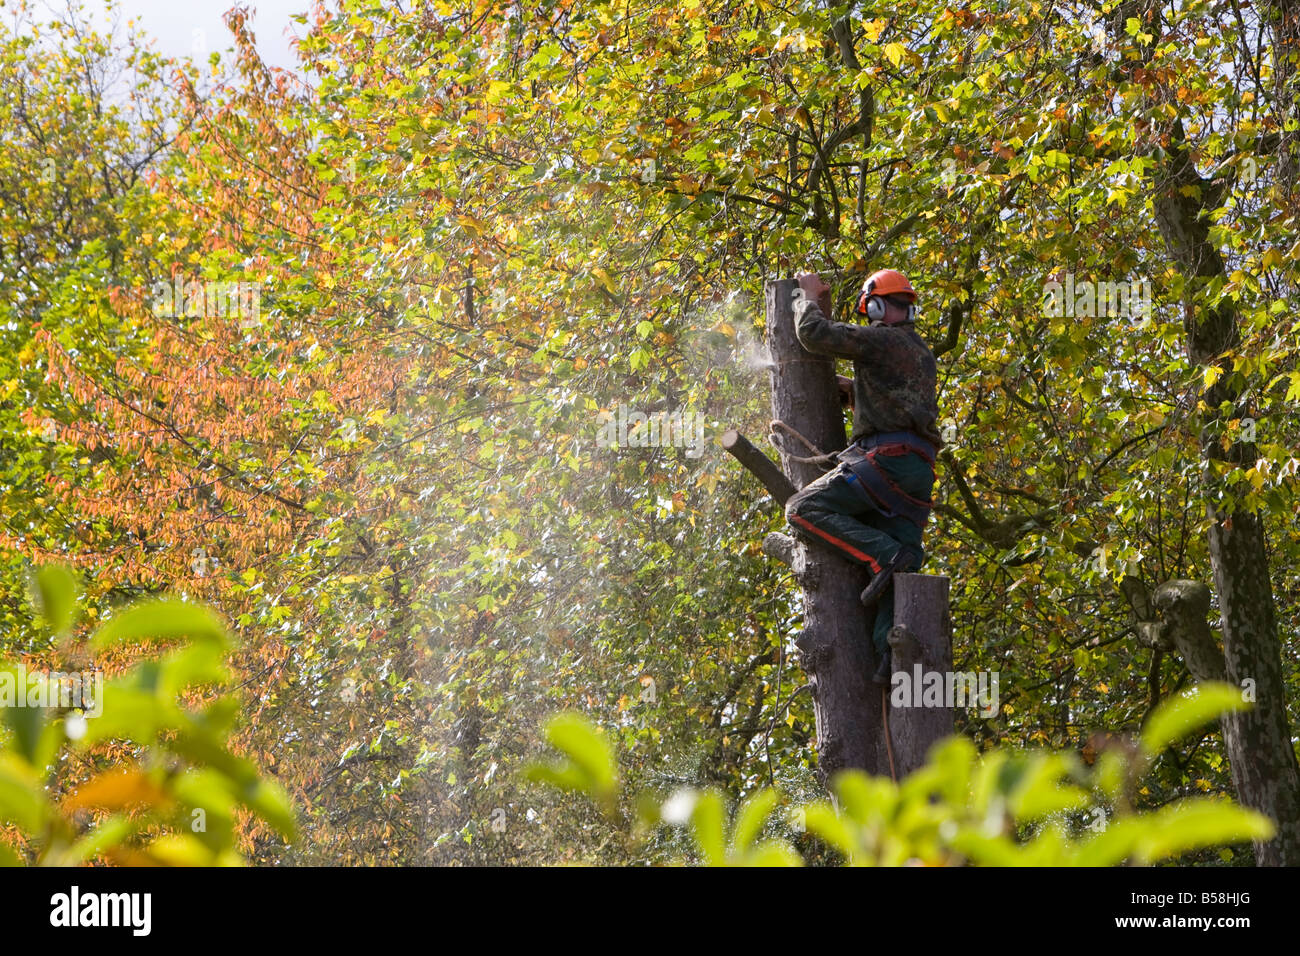 A tree surgeon cutting down a dead sycamore tree UK autumn - Stock Image